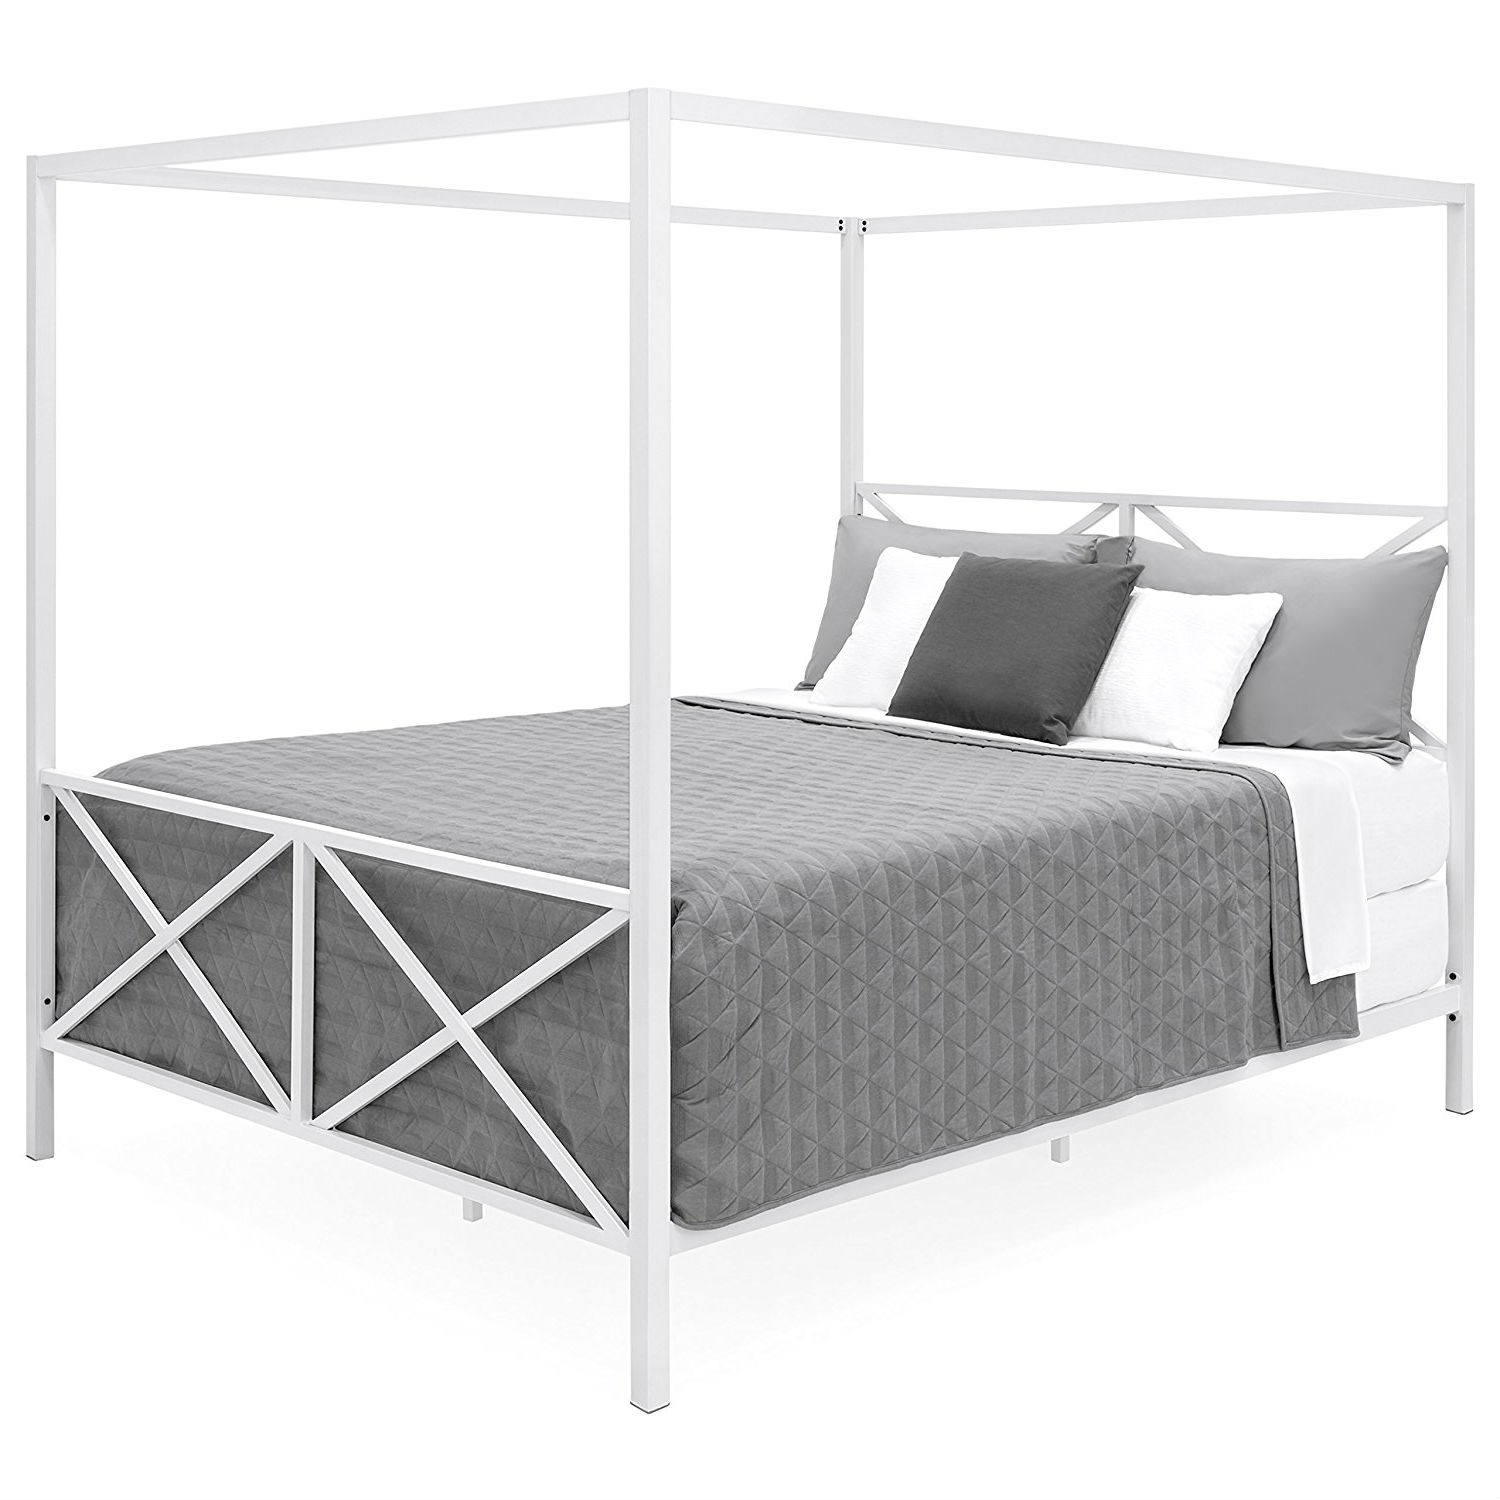 - Queen Size Modern Industrial Style White Metal Canopy Bed Frame